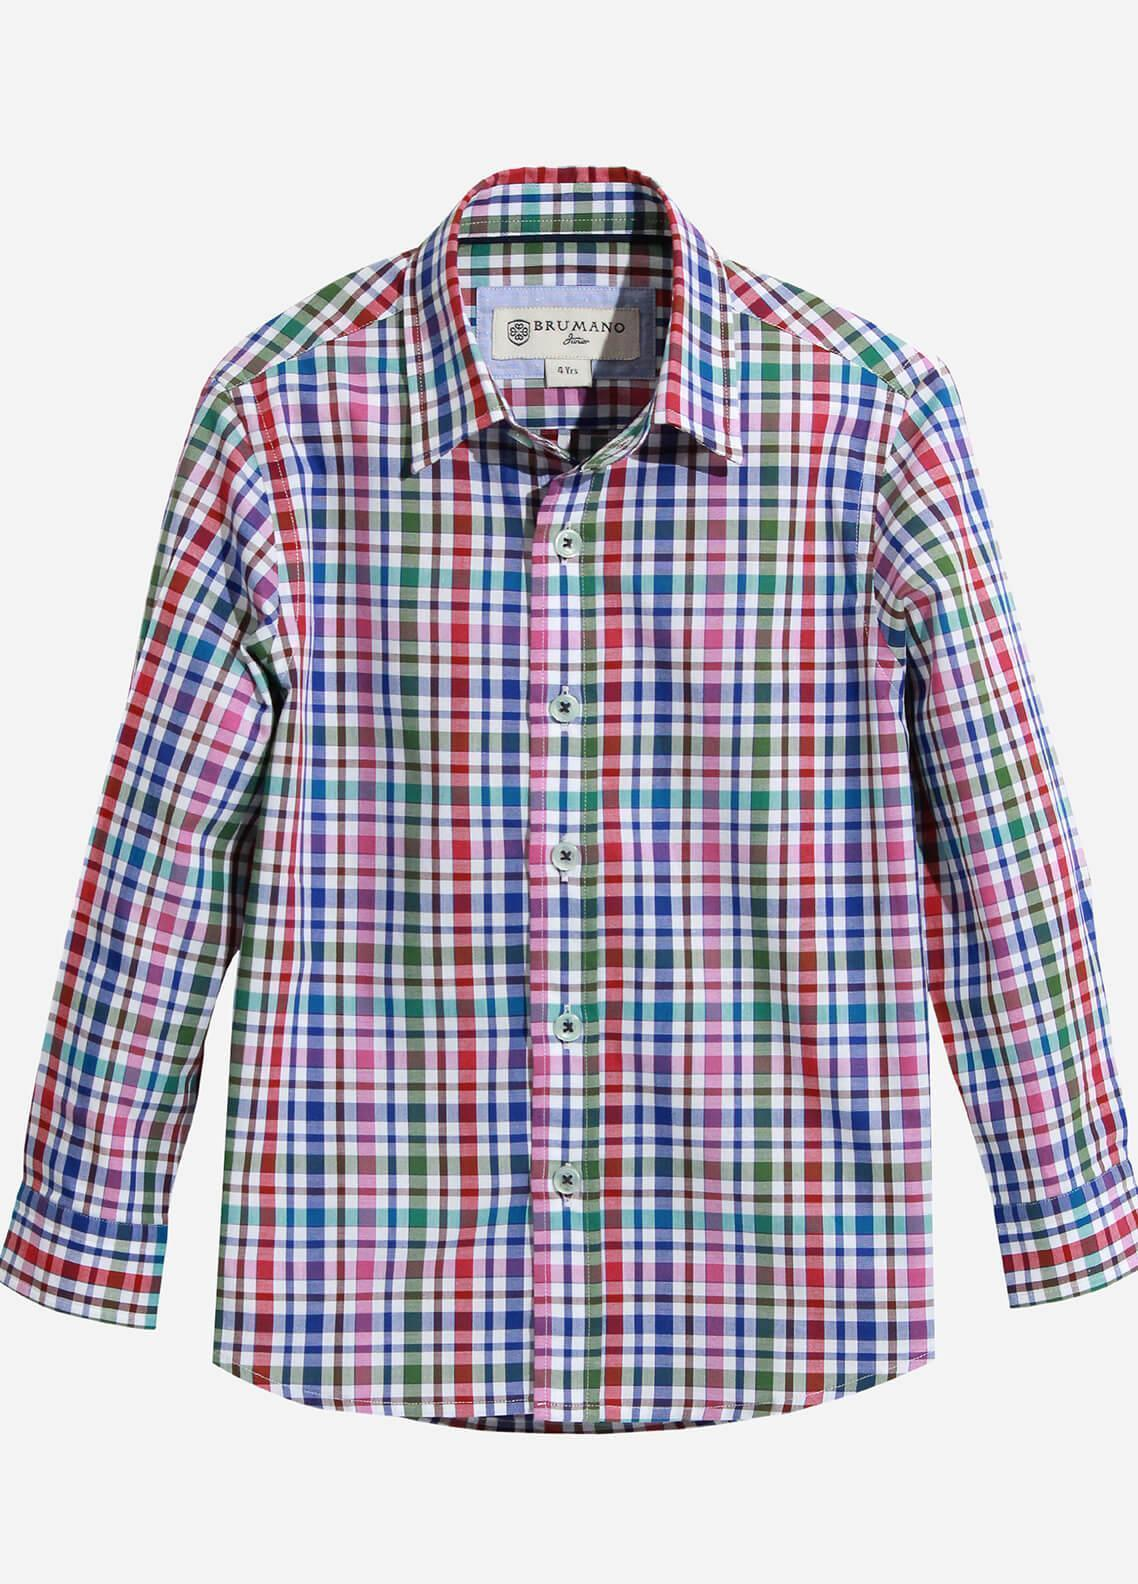 Brumano Cotton Casual Shirts for Boys - Multi BRM-604